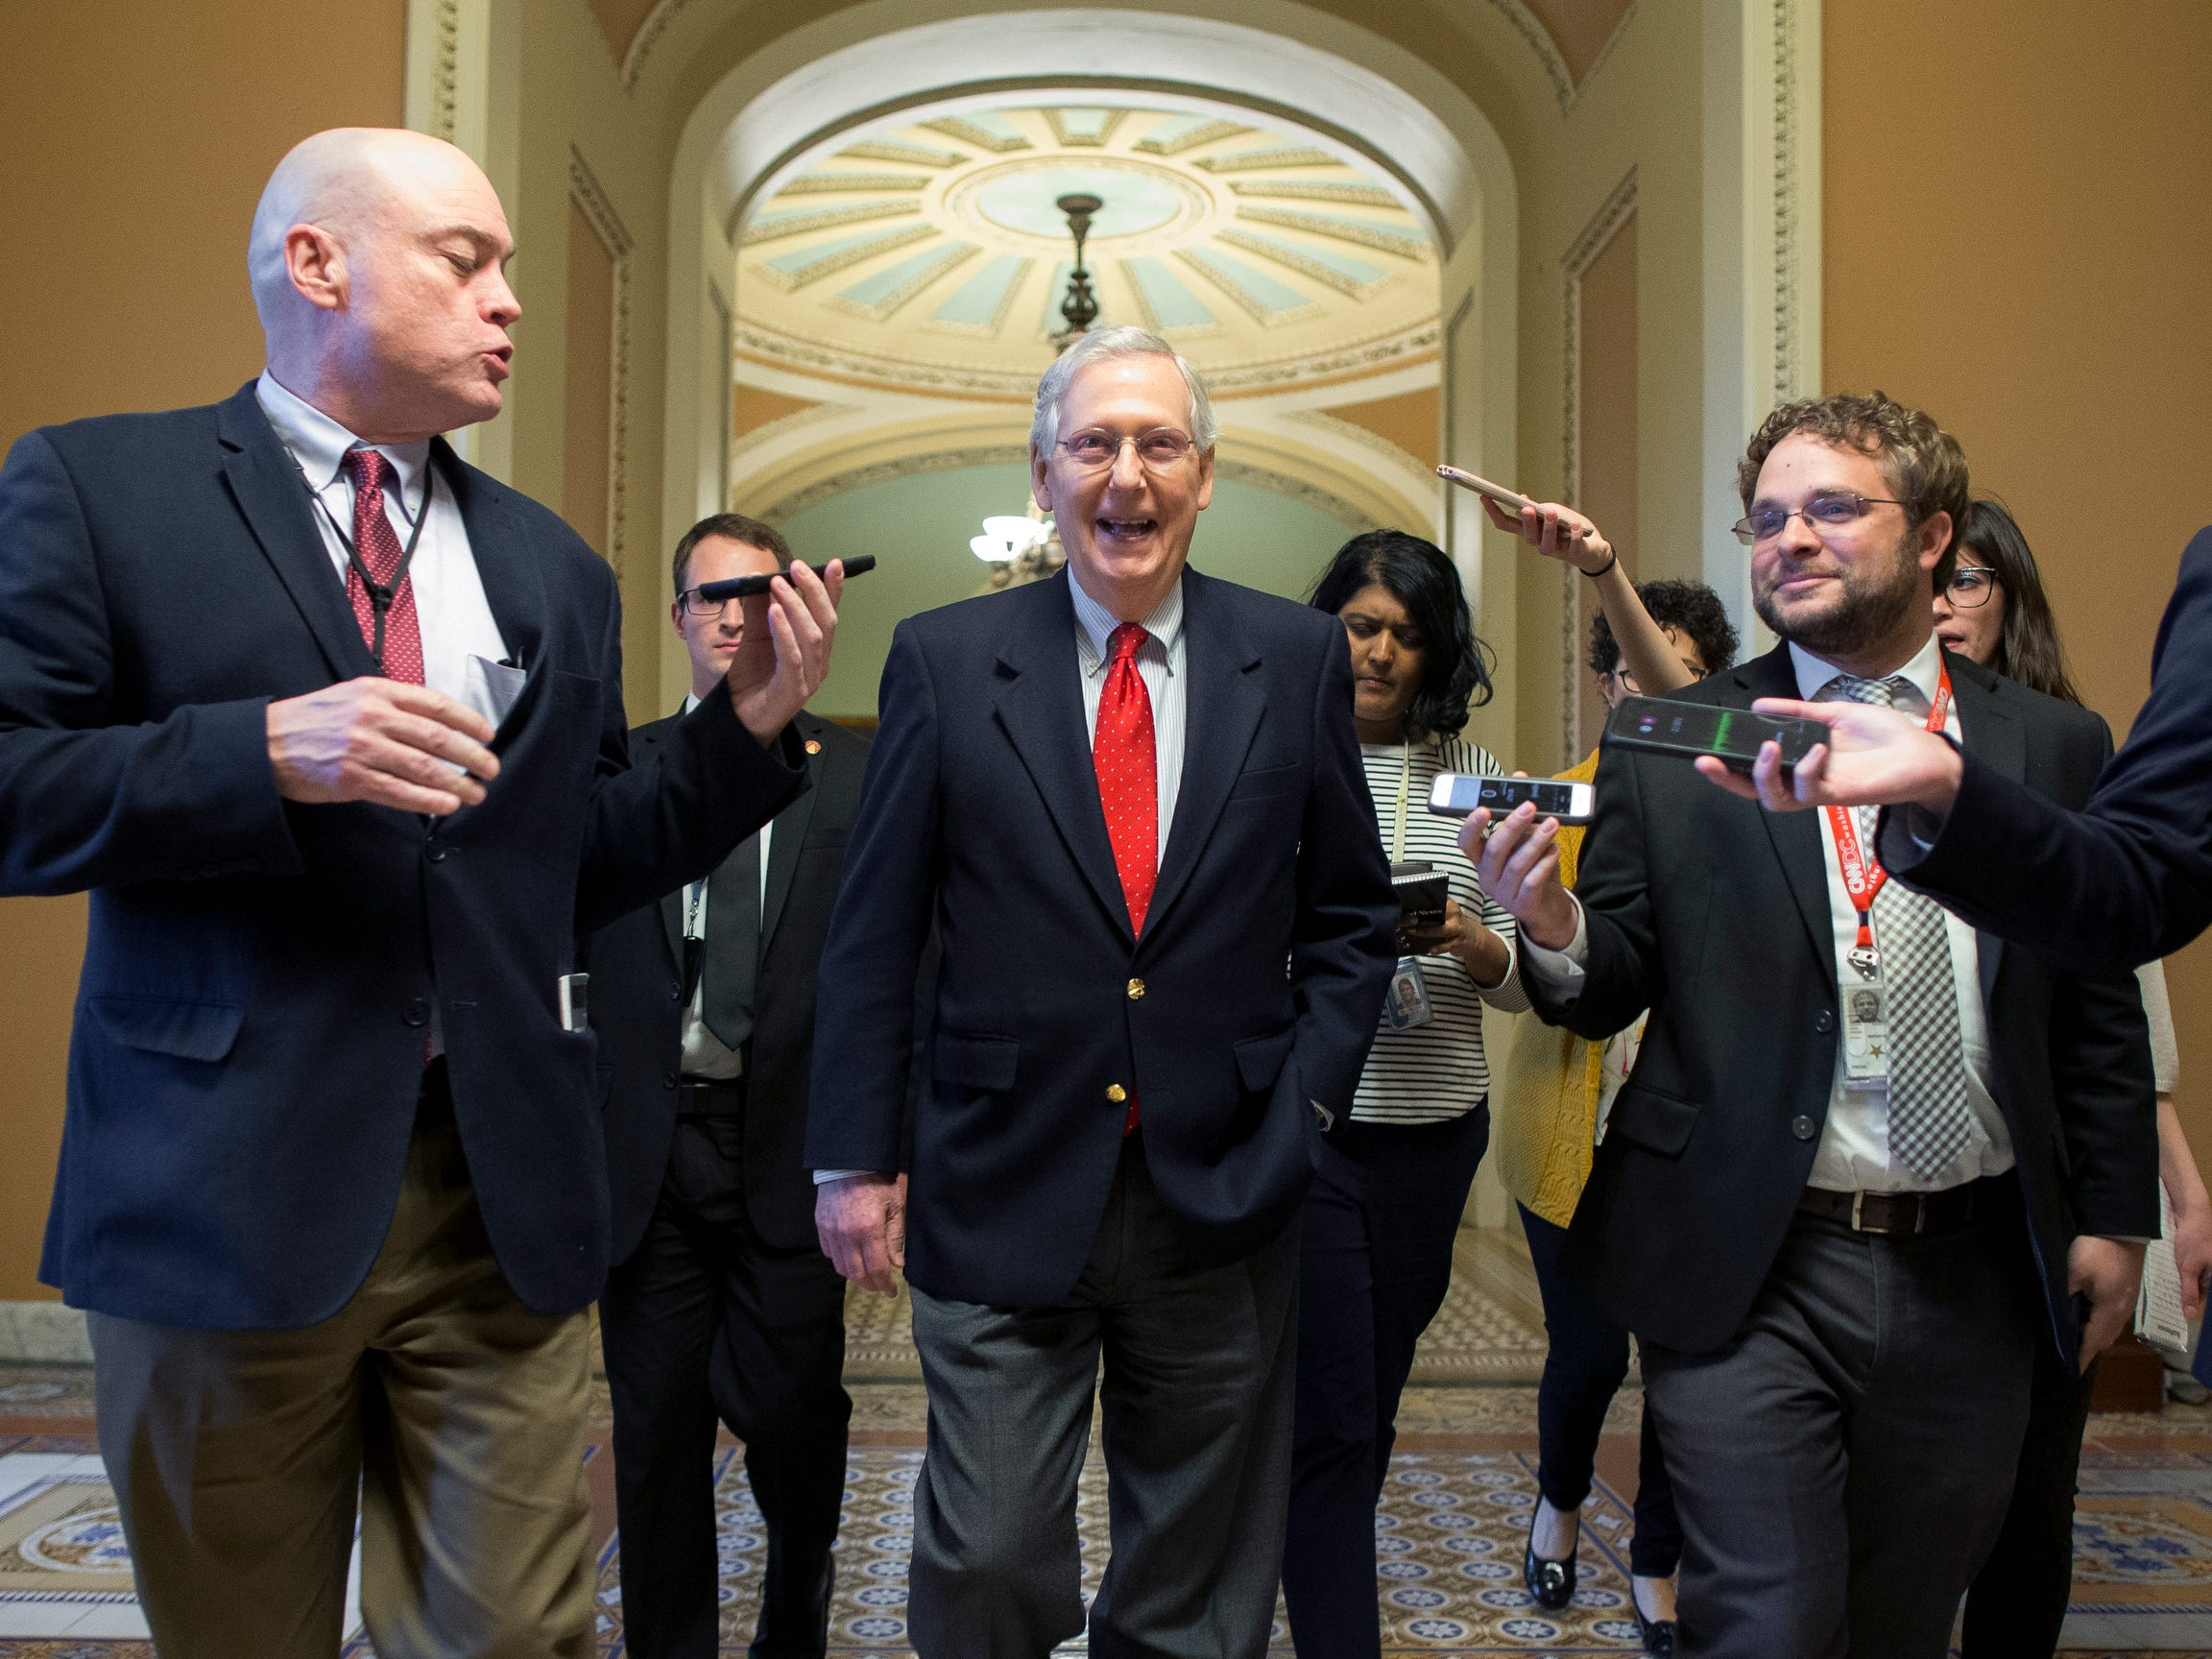 Senate Majority Leader Republican Mitch McConnell, center, is followed by members of the news media as he walks from the Senate floor on Capitol Hill in Washington, DC, on Dec. 21, 2018. President Trump rejected a continuing resolution to fund the federal government through Feb. 8, 2019, threatening a partial shutdown unless funding is included for his border wall.